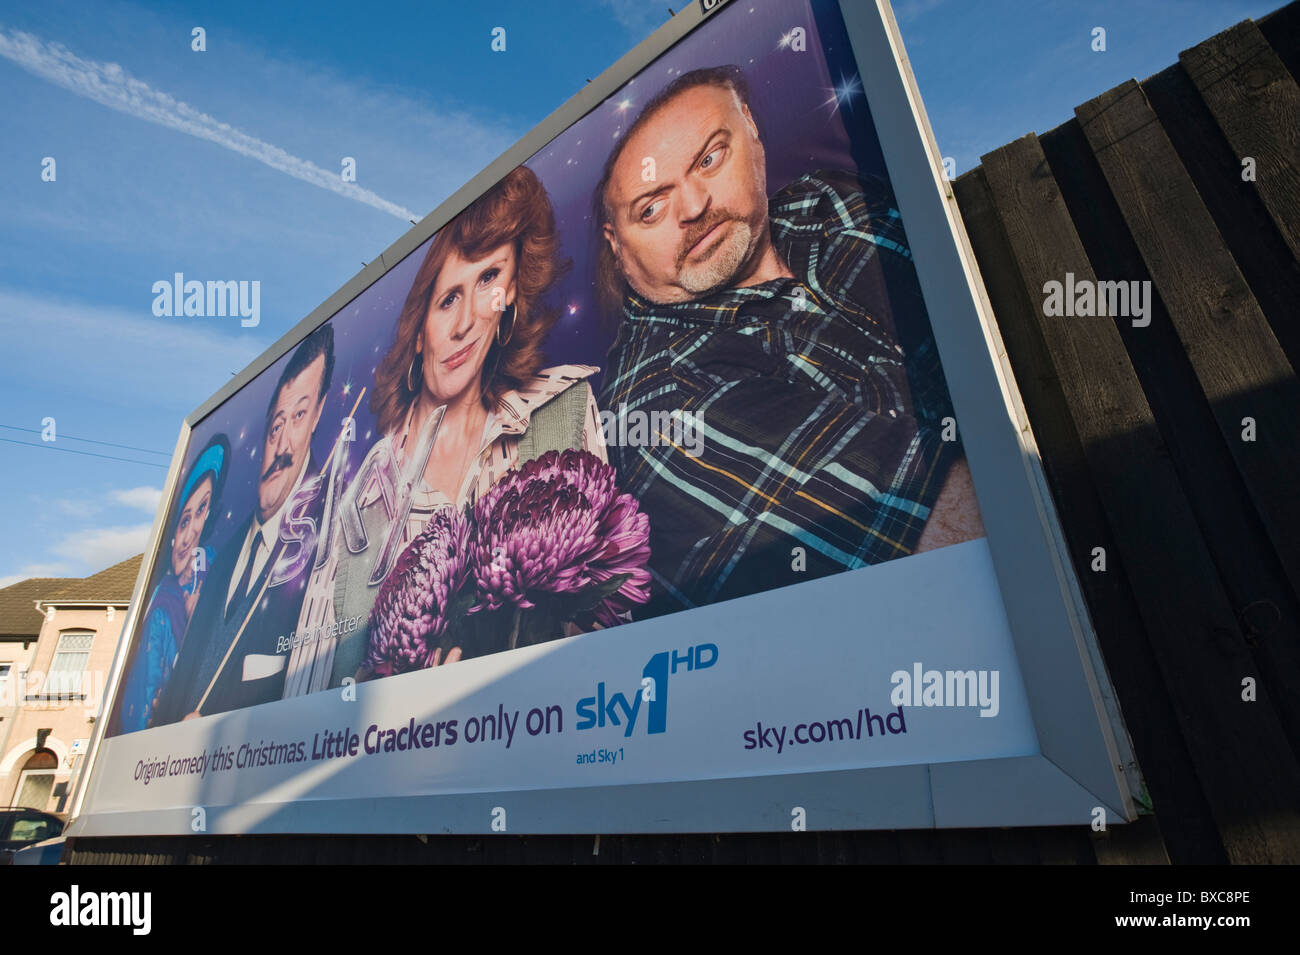 Roadside advertising billboard poster on JCDecaux site for sky1HD television channel Christmas programmes - Stock Image